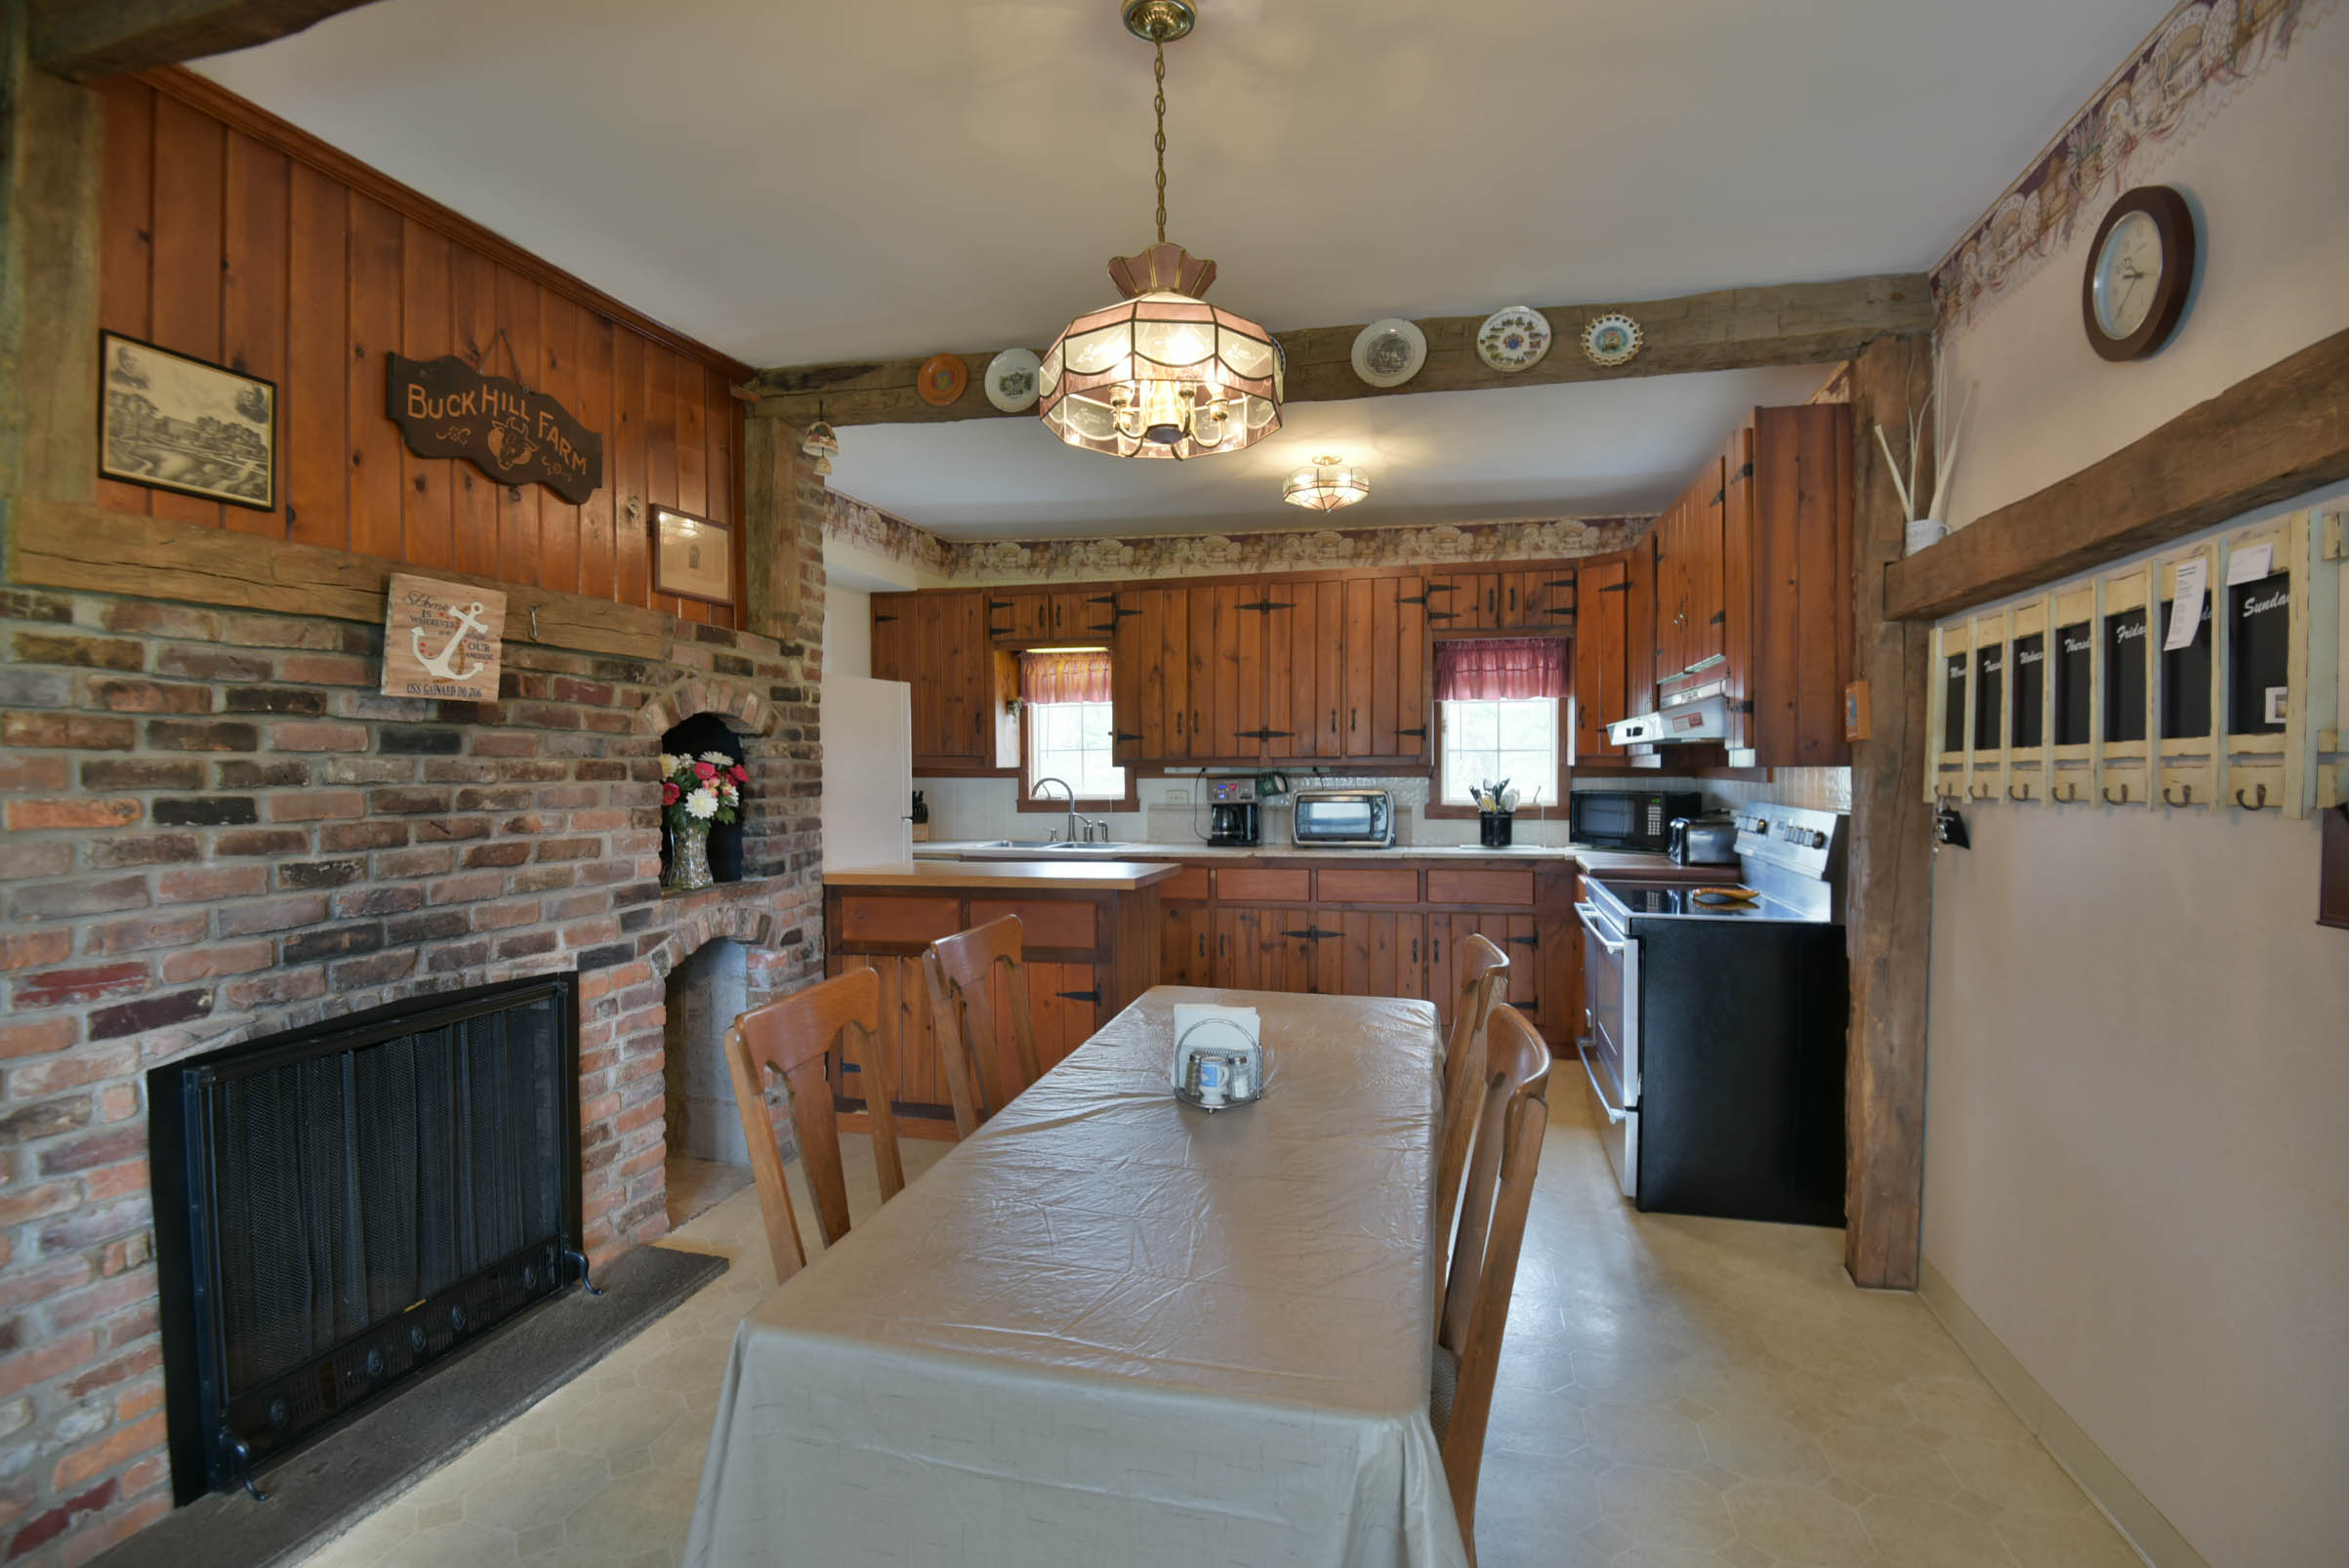 4692 military rd-5822